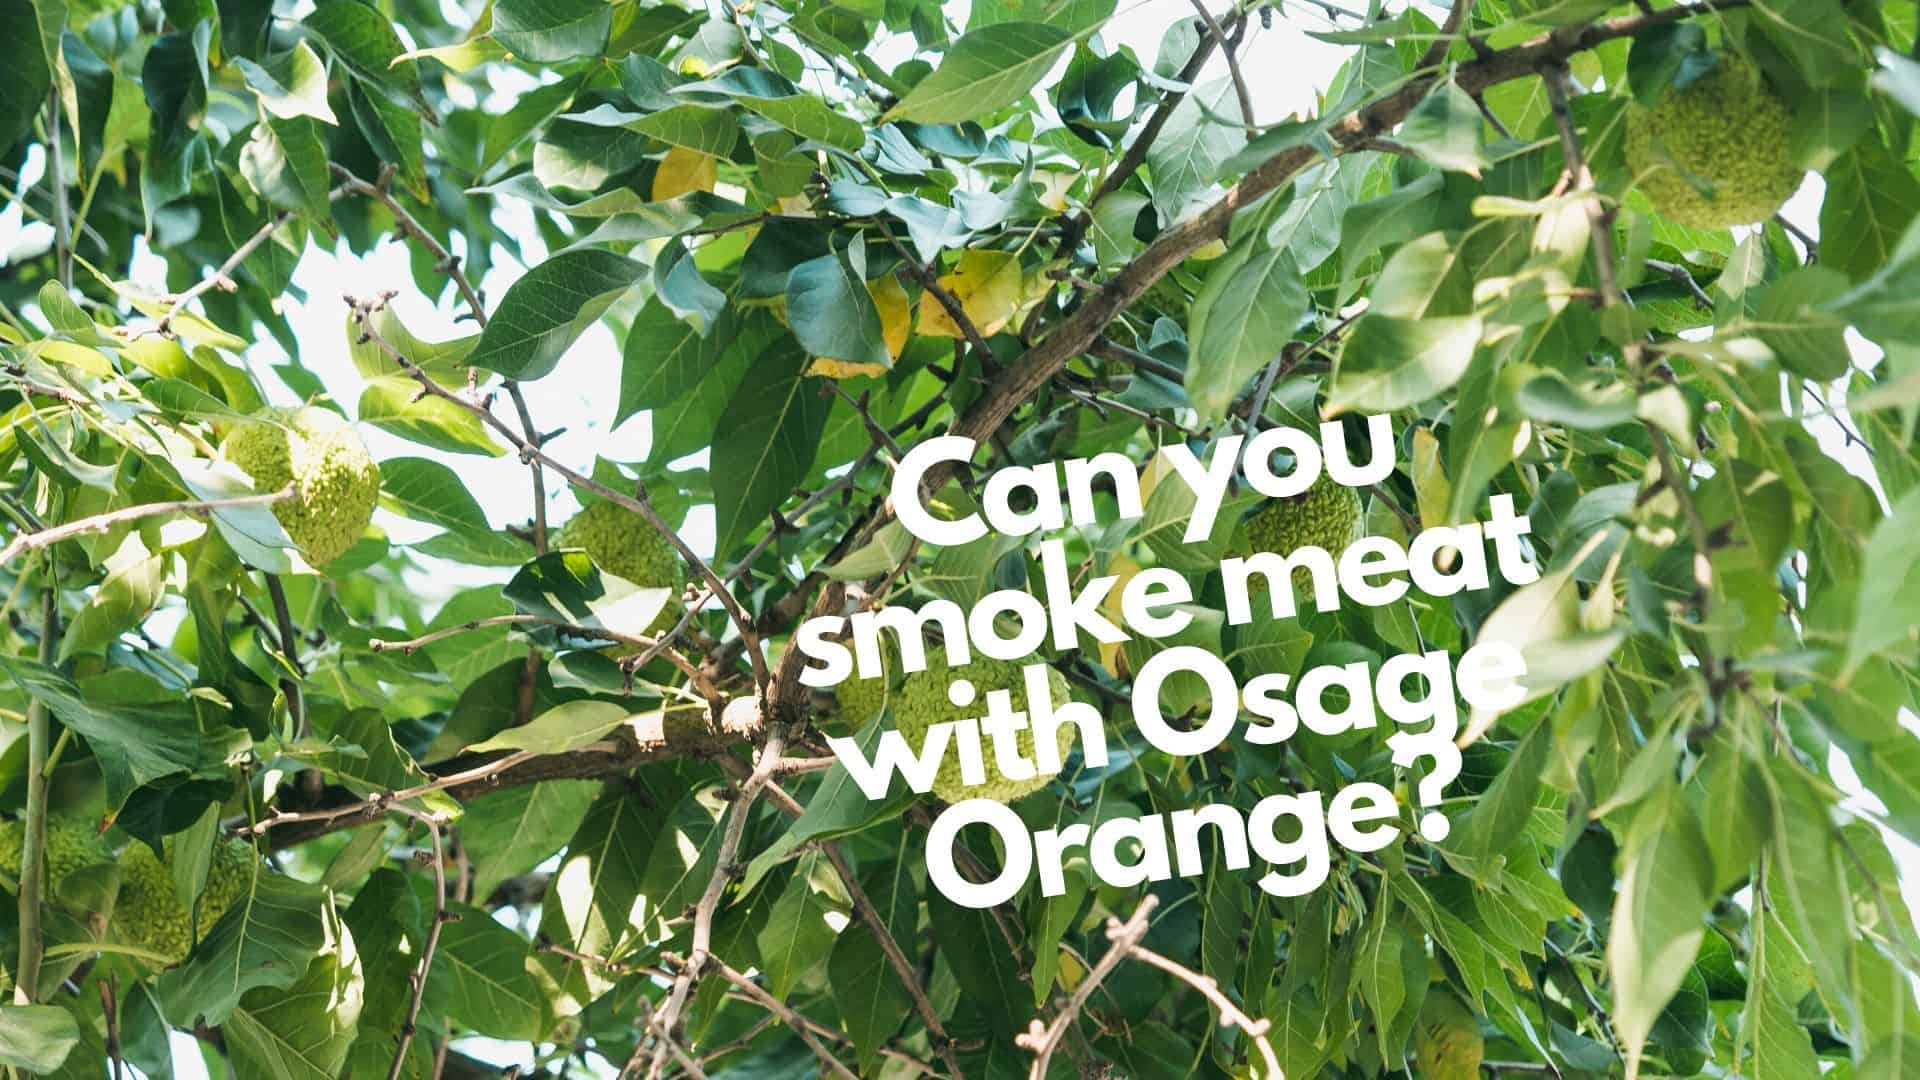 Can you smoke meat with Osage Orange? Yes, and here's how